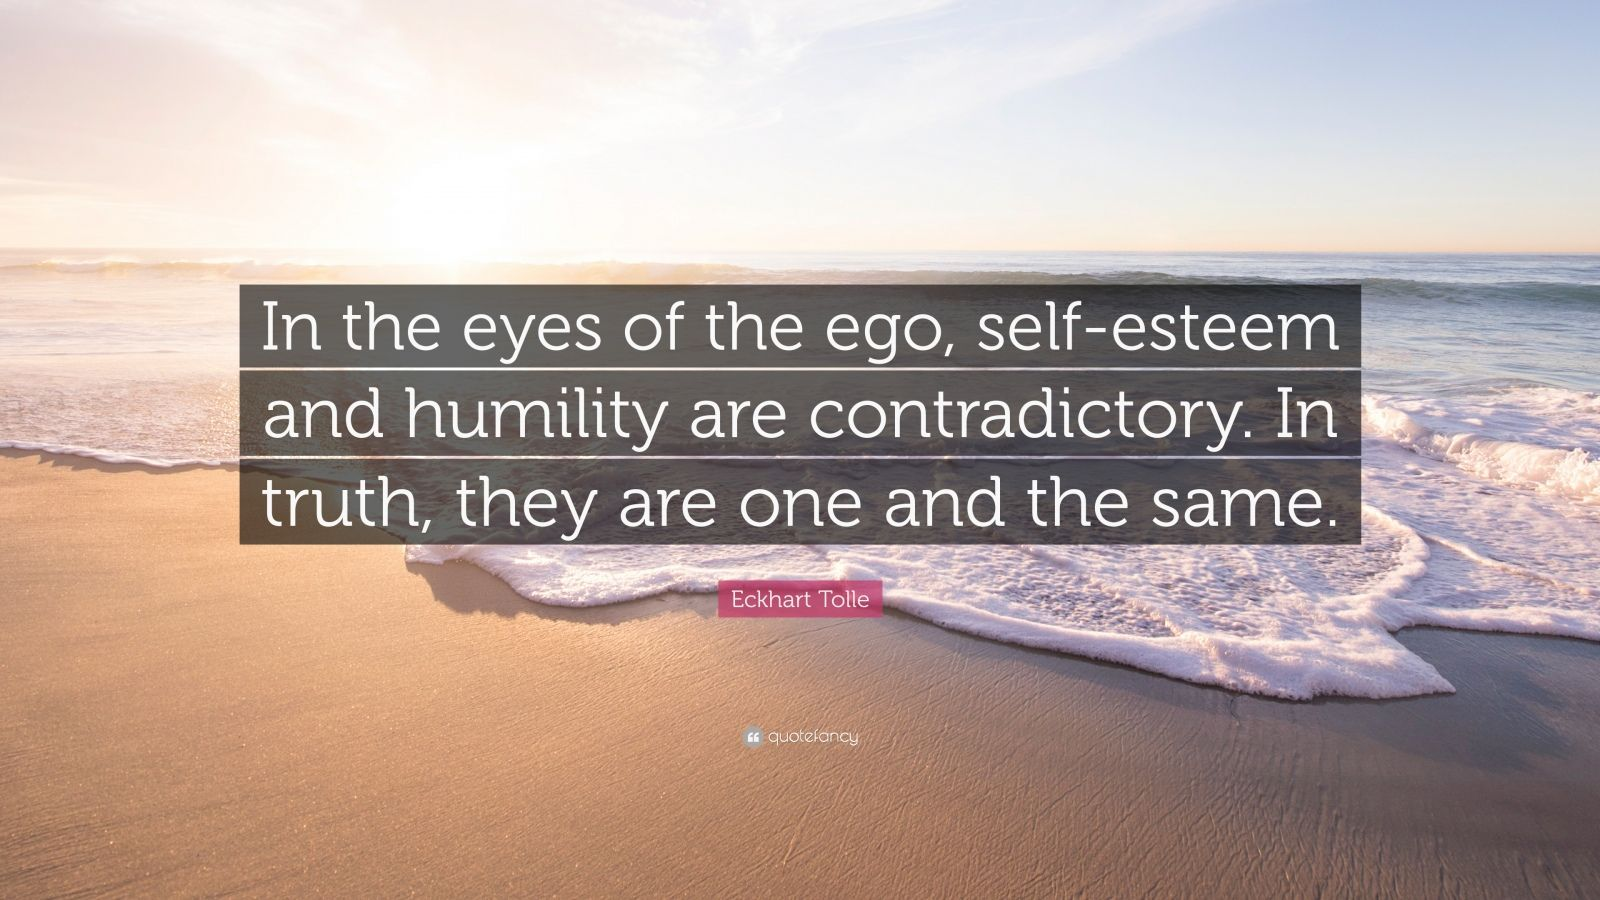 """Eckhart Tolle Quote: """"In the eyes of the ego, self-esteem and humility are contradictory. In truth, they are one and the same."""""""